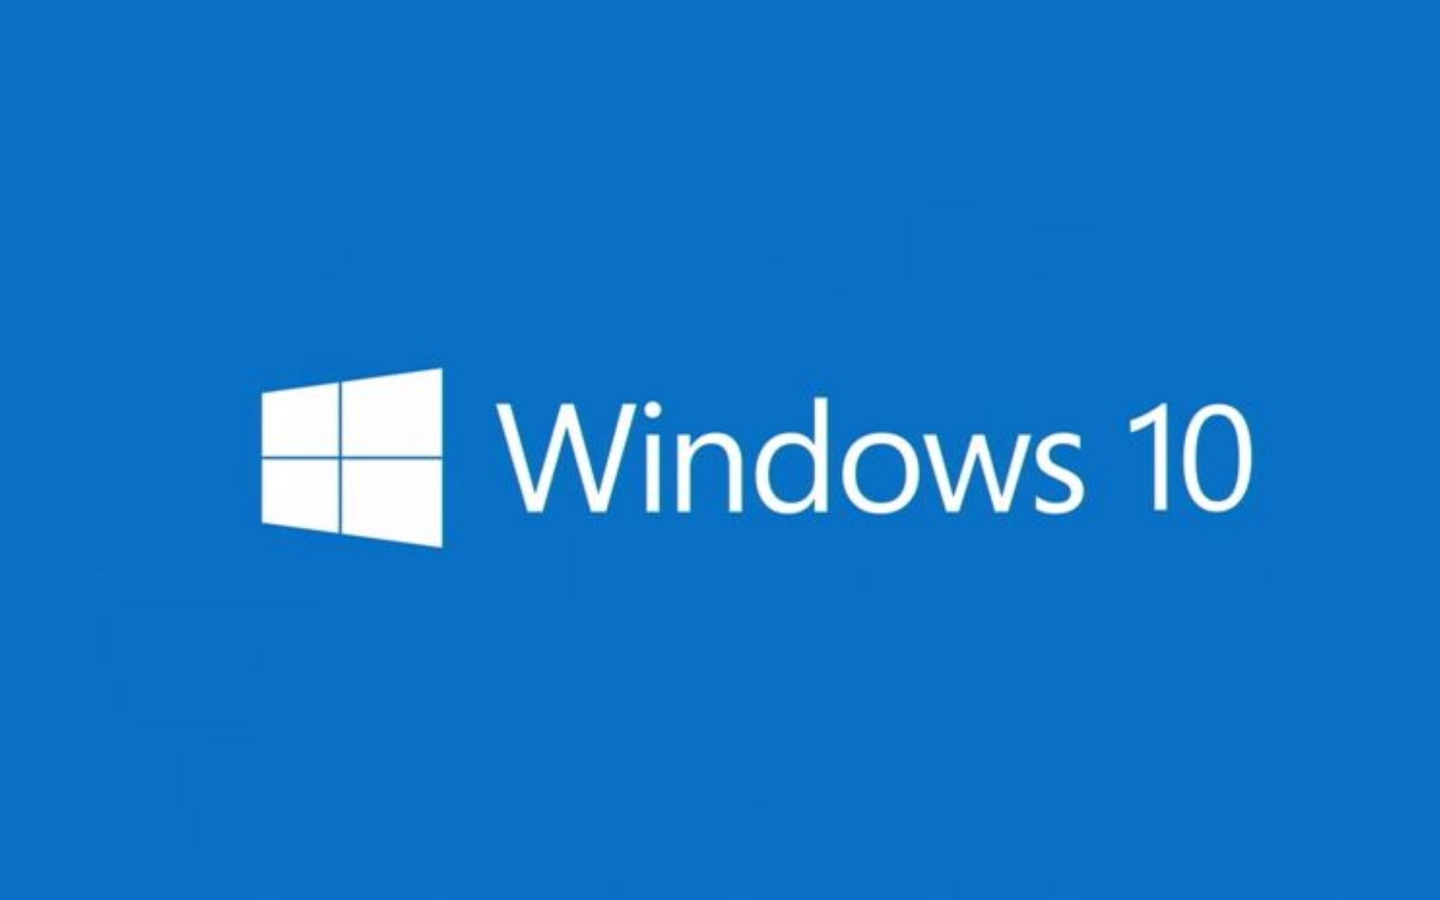 Download Wallpaper 1440x900 Windows 10 technical preview Windows 10 1440x900